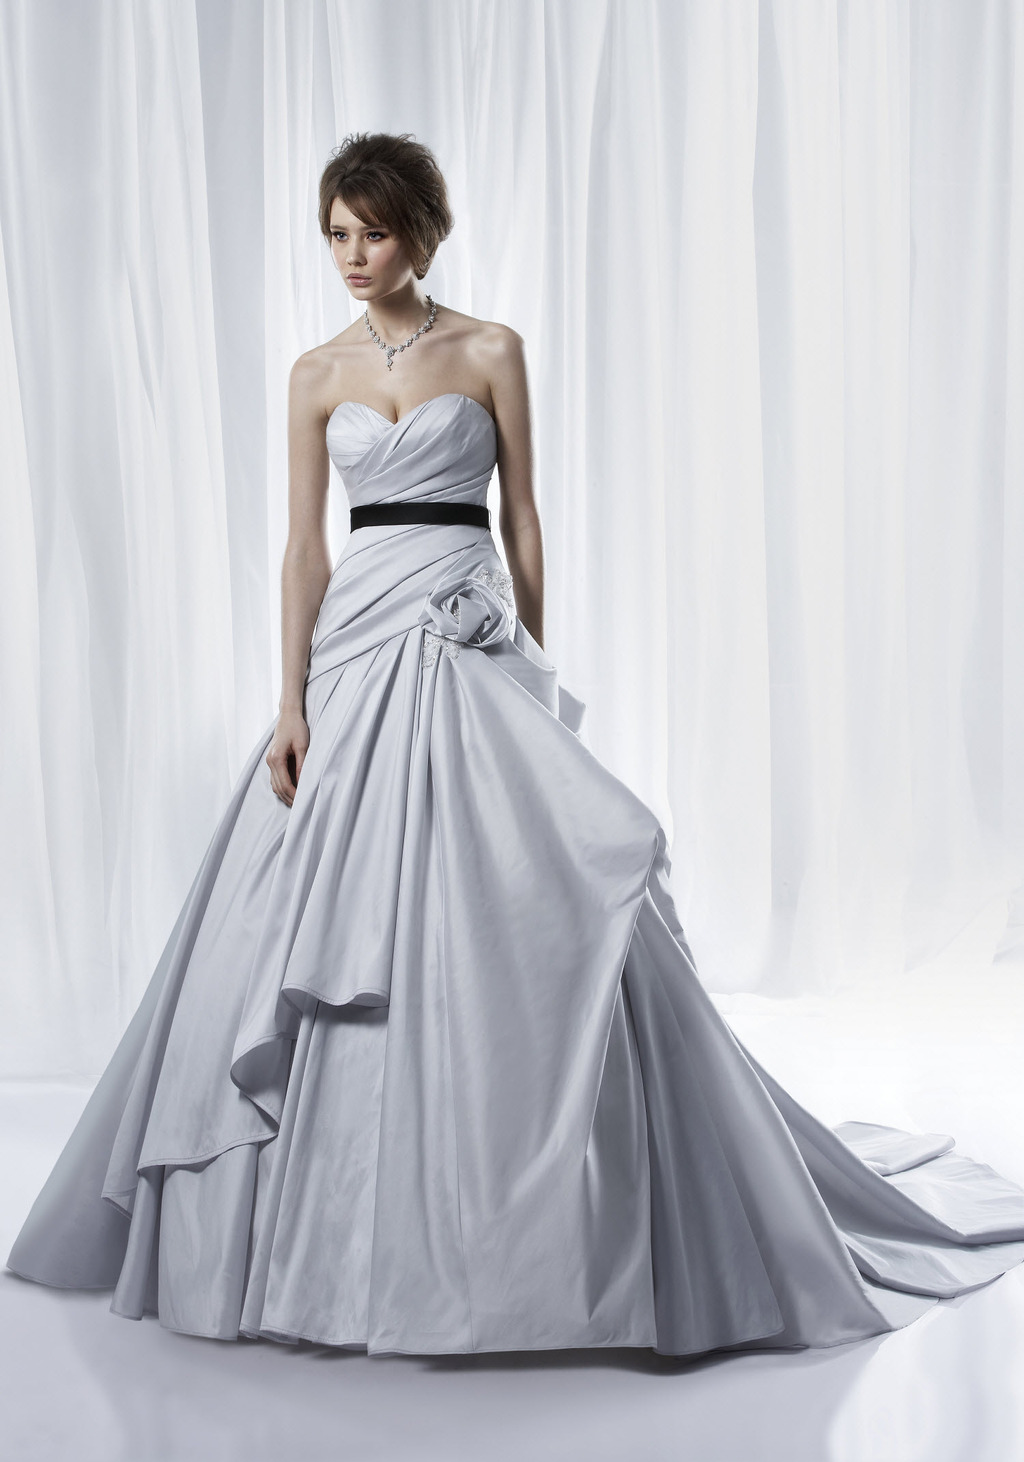 Non white dove grey ballgown wedding dress with modern for Silver and white wedding dresses